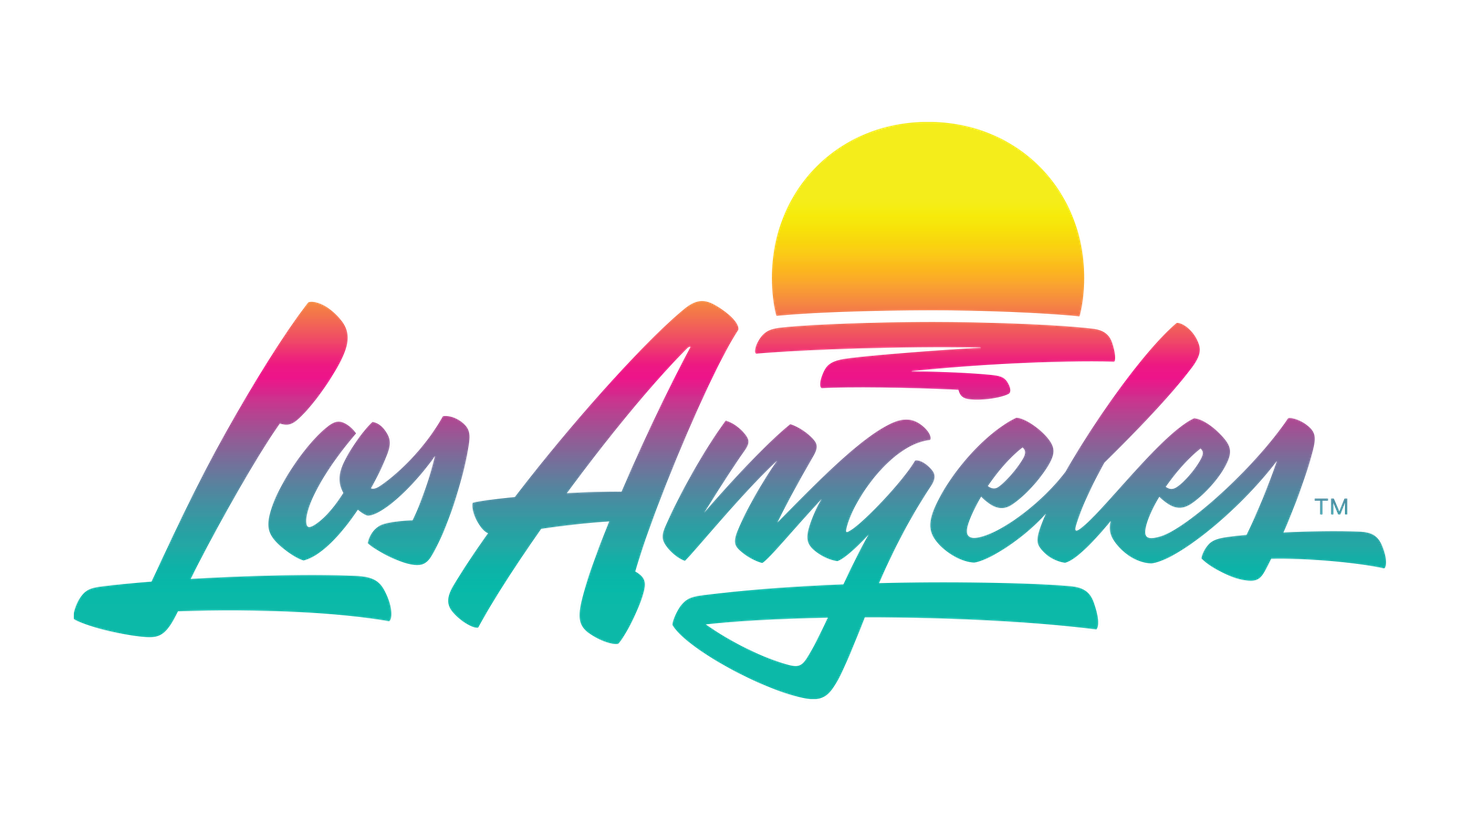 The new Los Angeles logo debuted in June. While some say its neon hues conjure an 80s or vapor wave vibe, branding expert Sasha Strauss says it contains dynamic energy that references coastal sunsets and a feeling of optimism.